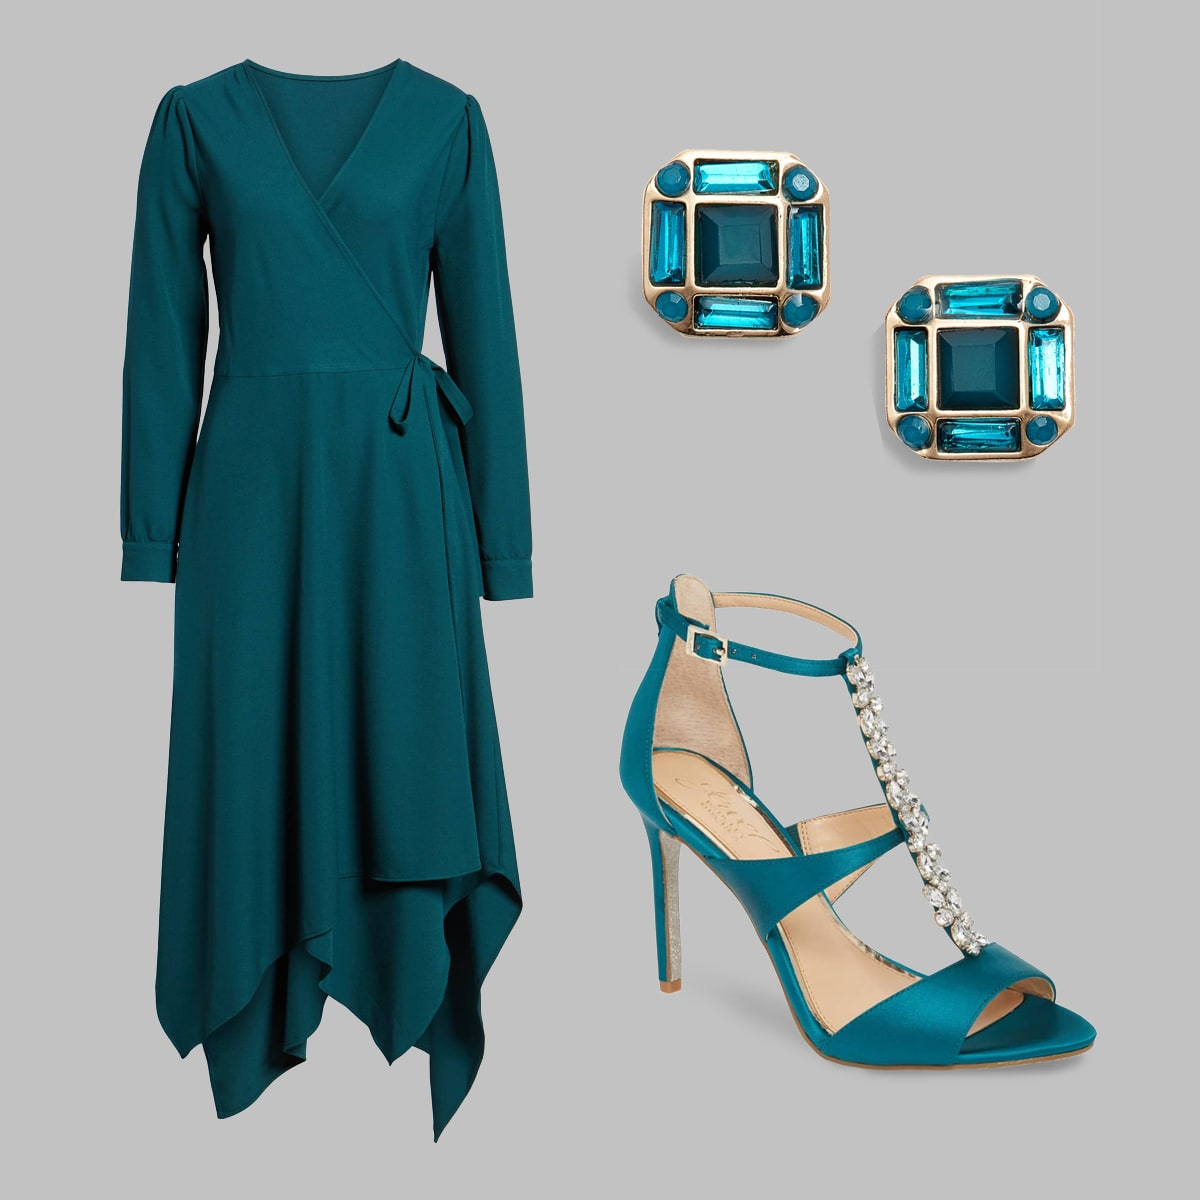 Teal wrap dress, jeweled heels, and earrings